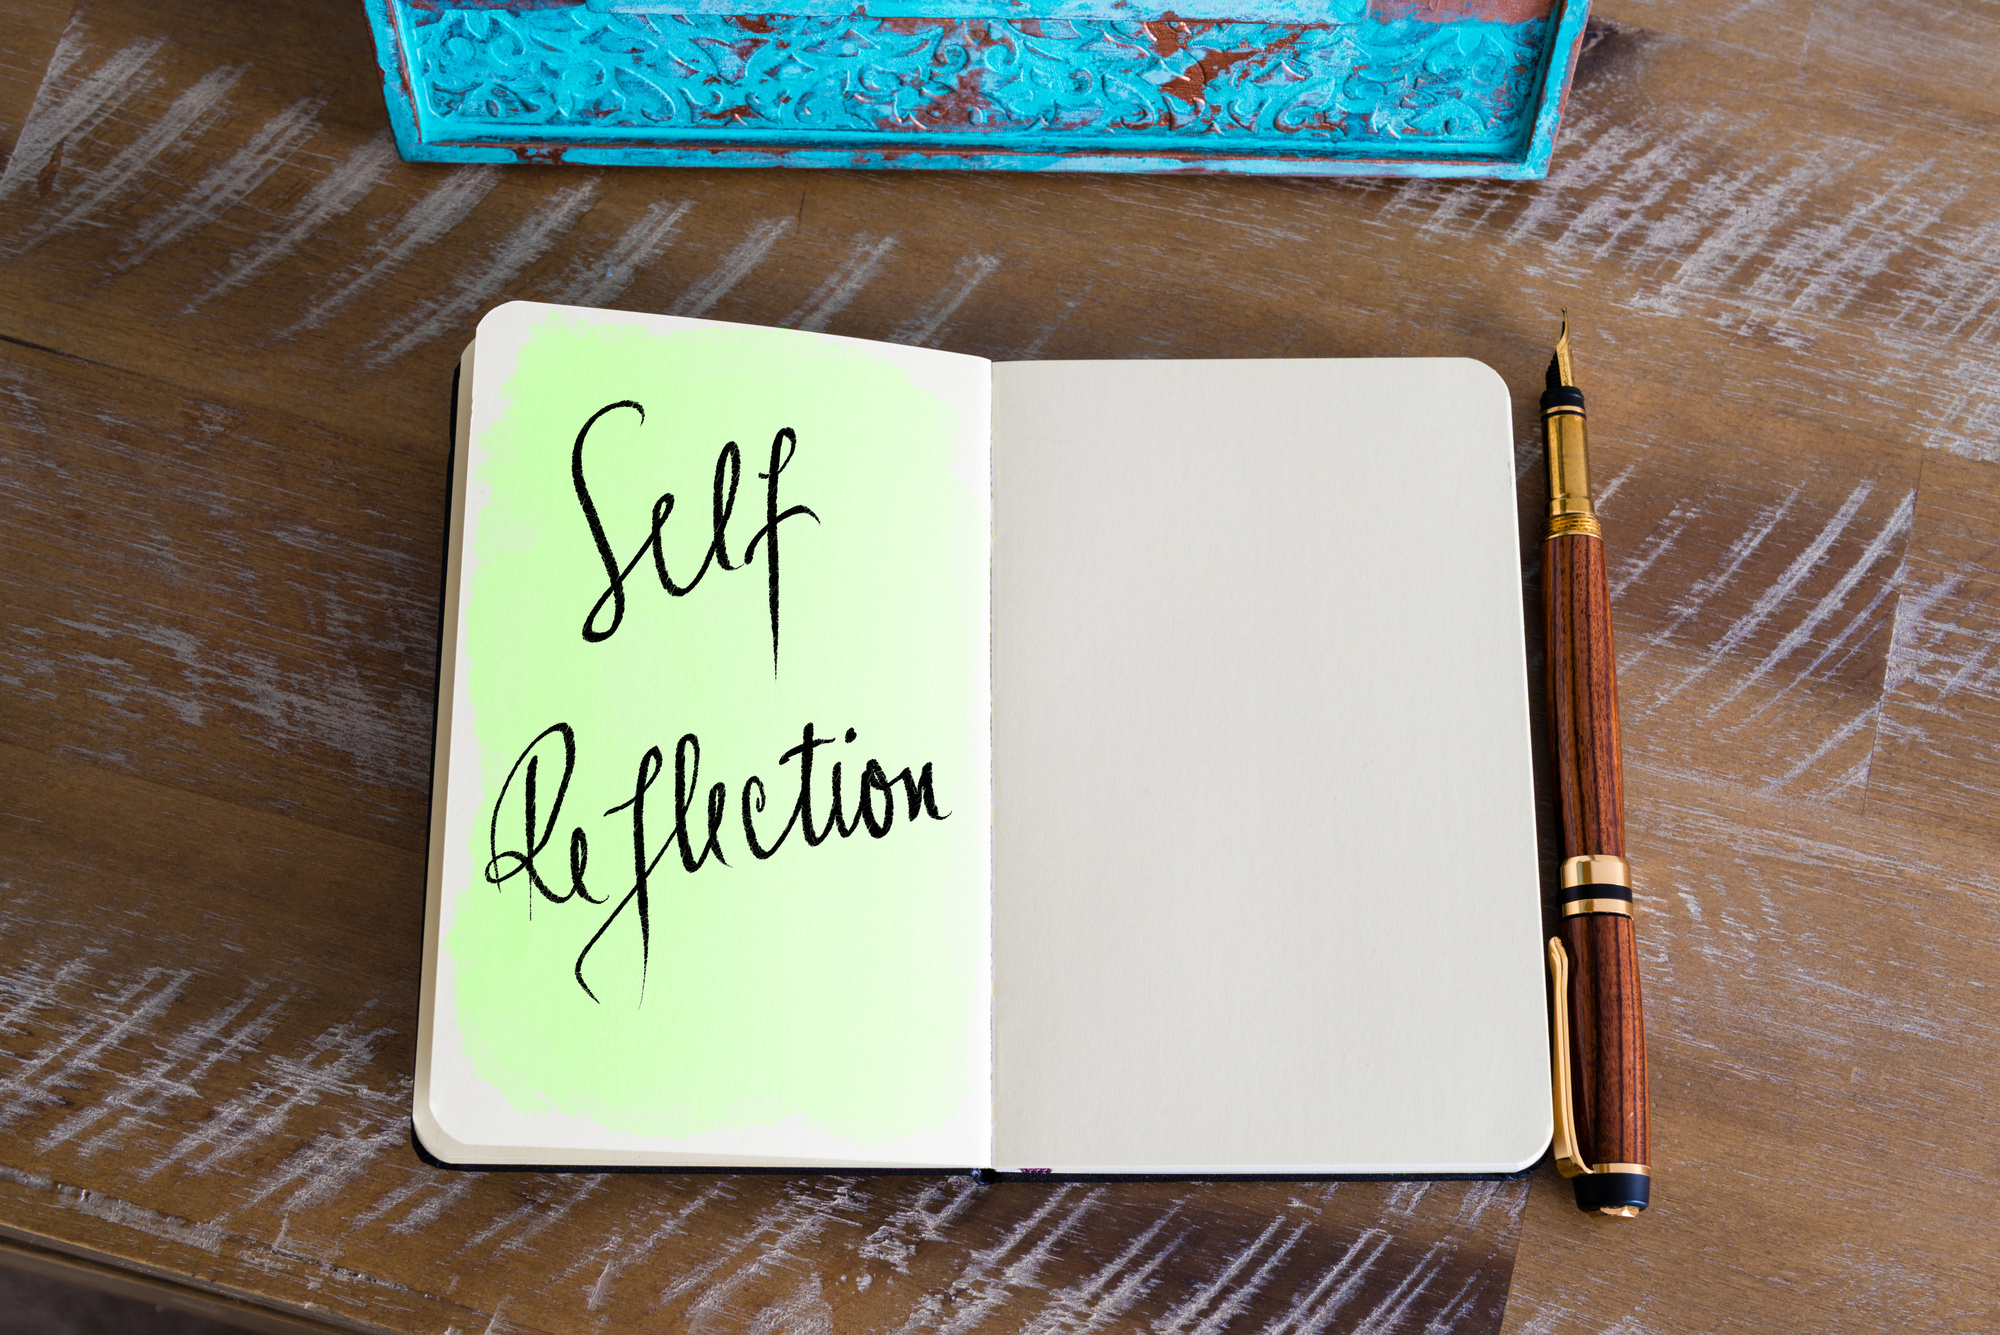 self reflective humble practice questions reflection tips office yourself leader leaders organization change busy simple ask help improvement